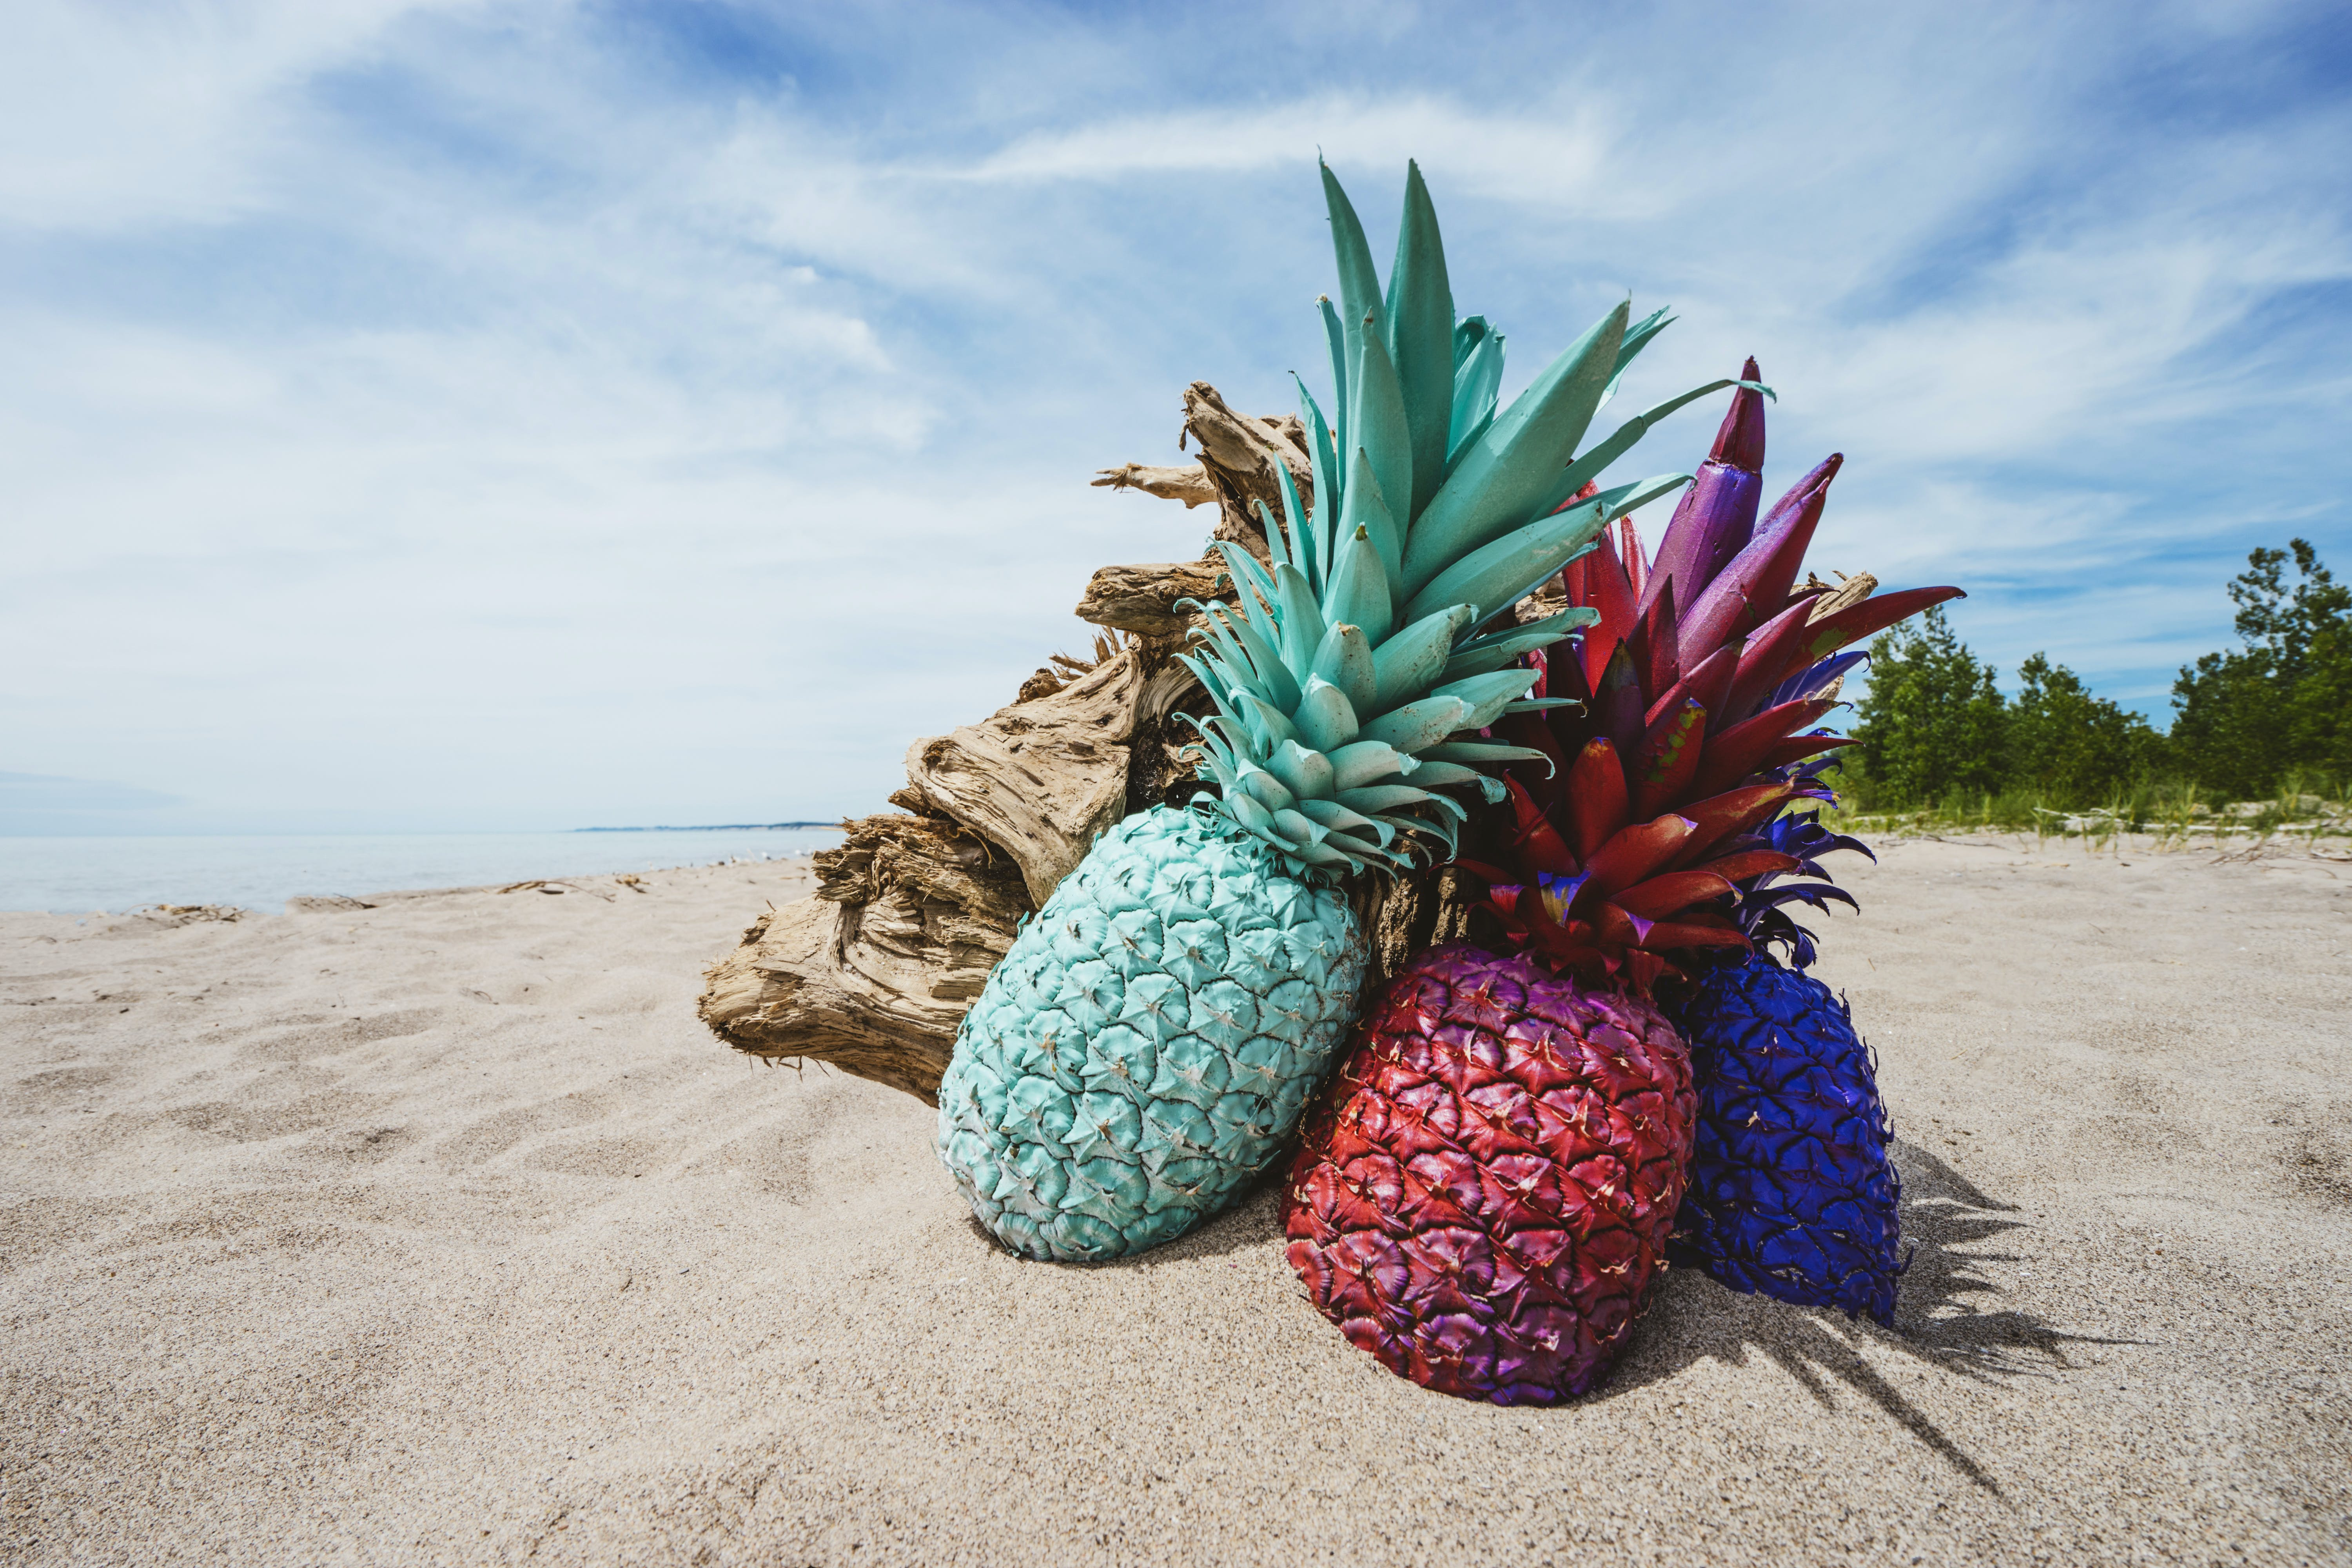 Three Assorted-color Pineapples on Sand